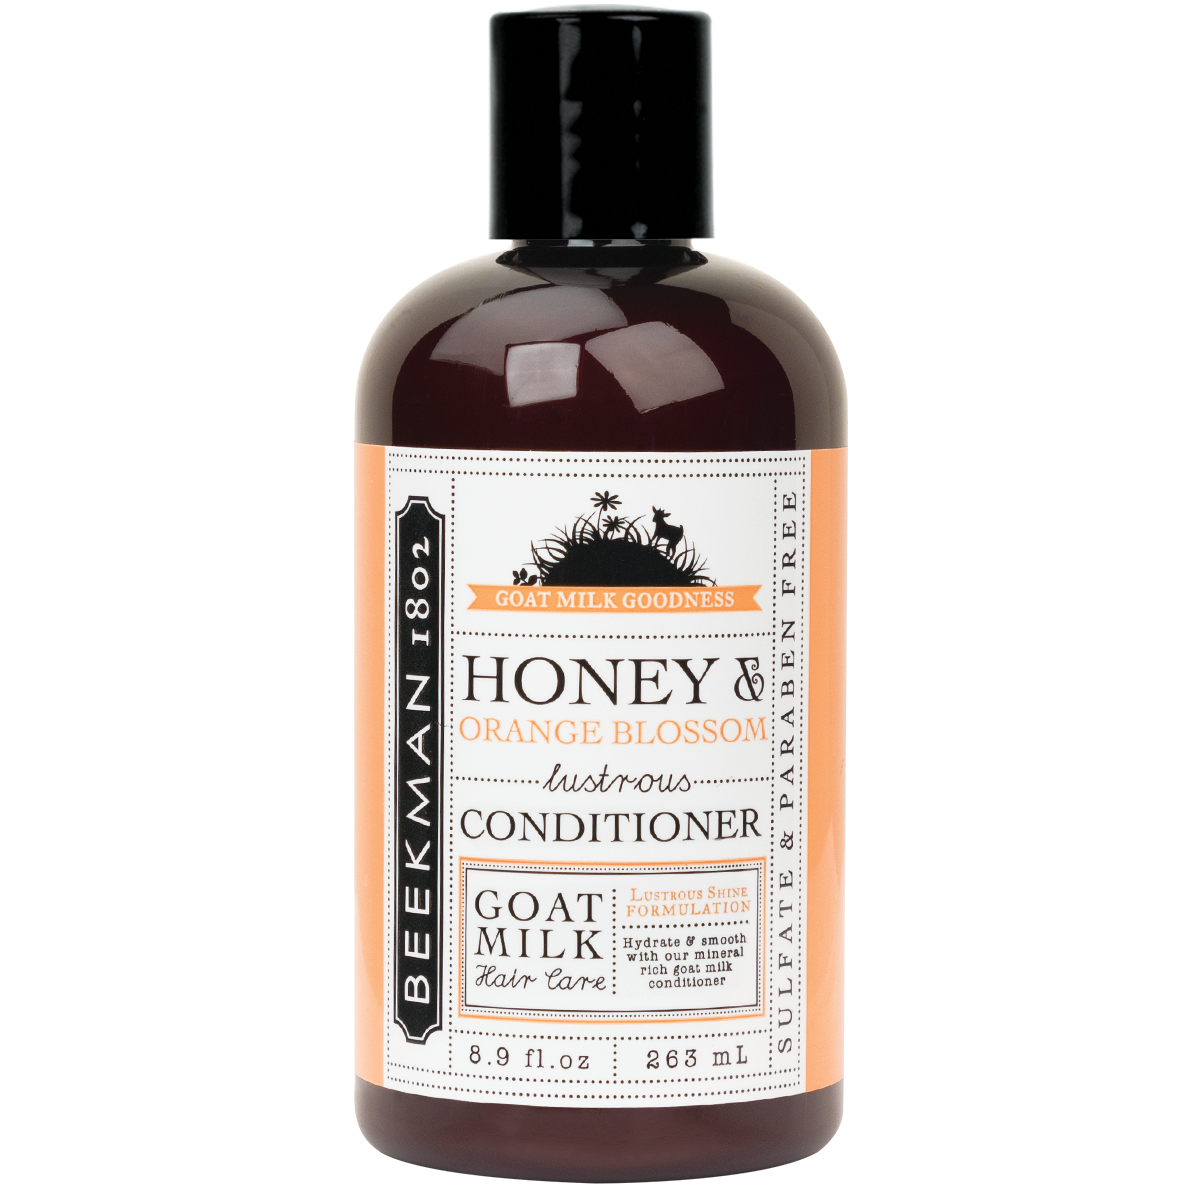 Honey & Orange Blossom Conditioner